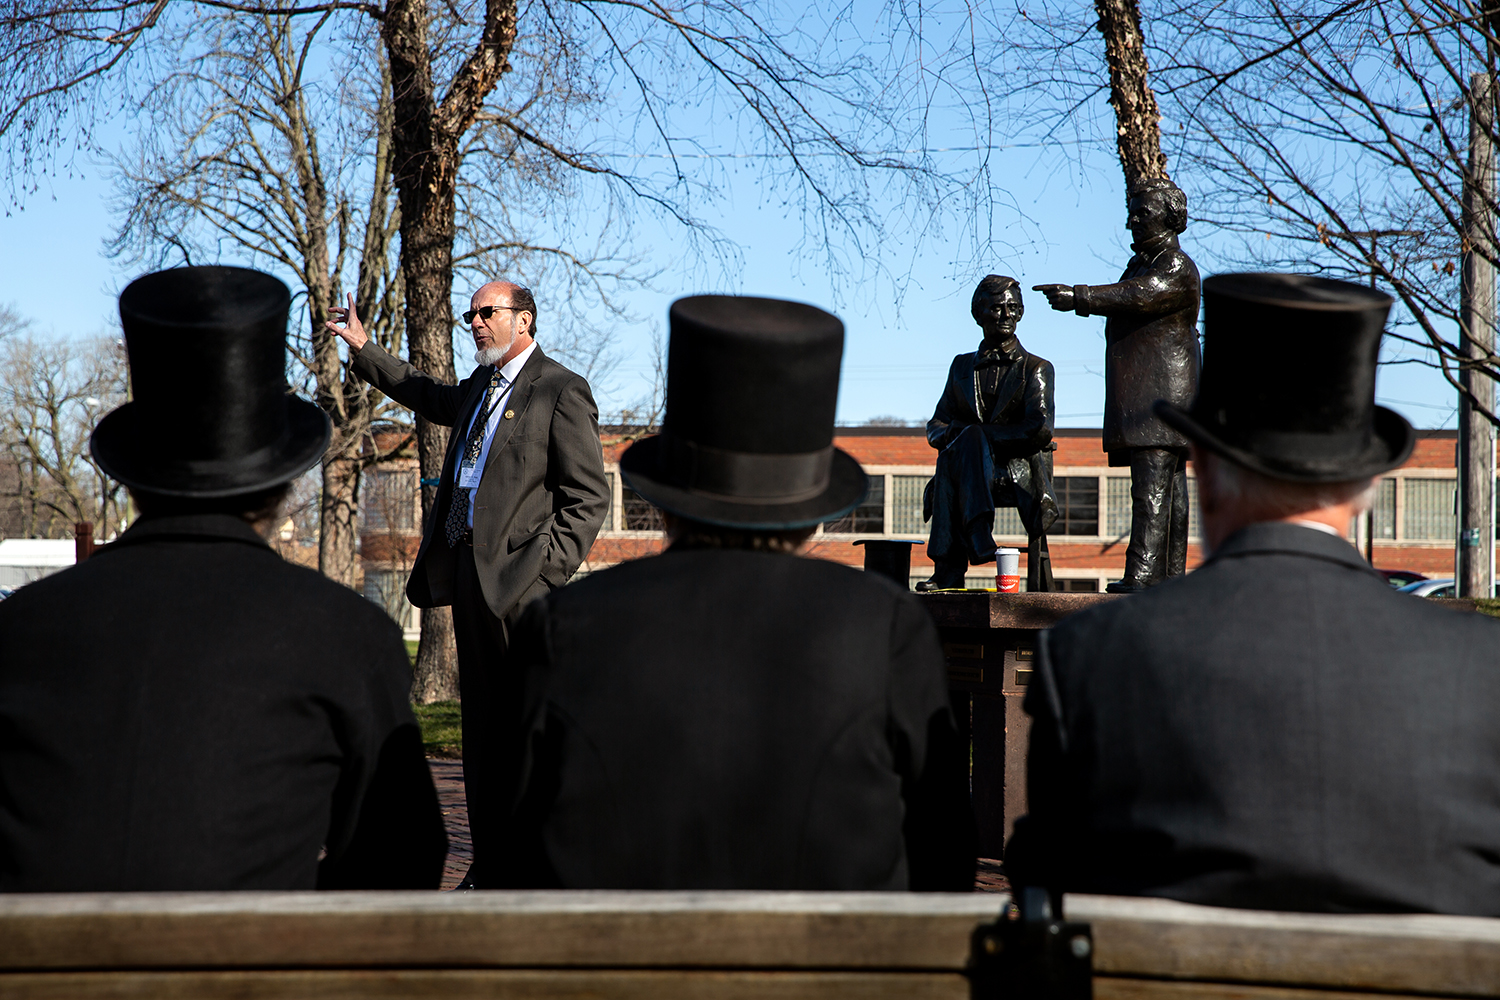 George Buss talks about the Lincoln-Douglas debate that took place in Freeport, Ill. during the Association of Lincoln Presenters annual convention Friday, April 20, 2018. [Rich Saal/The State Journal-Register]